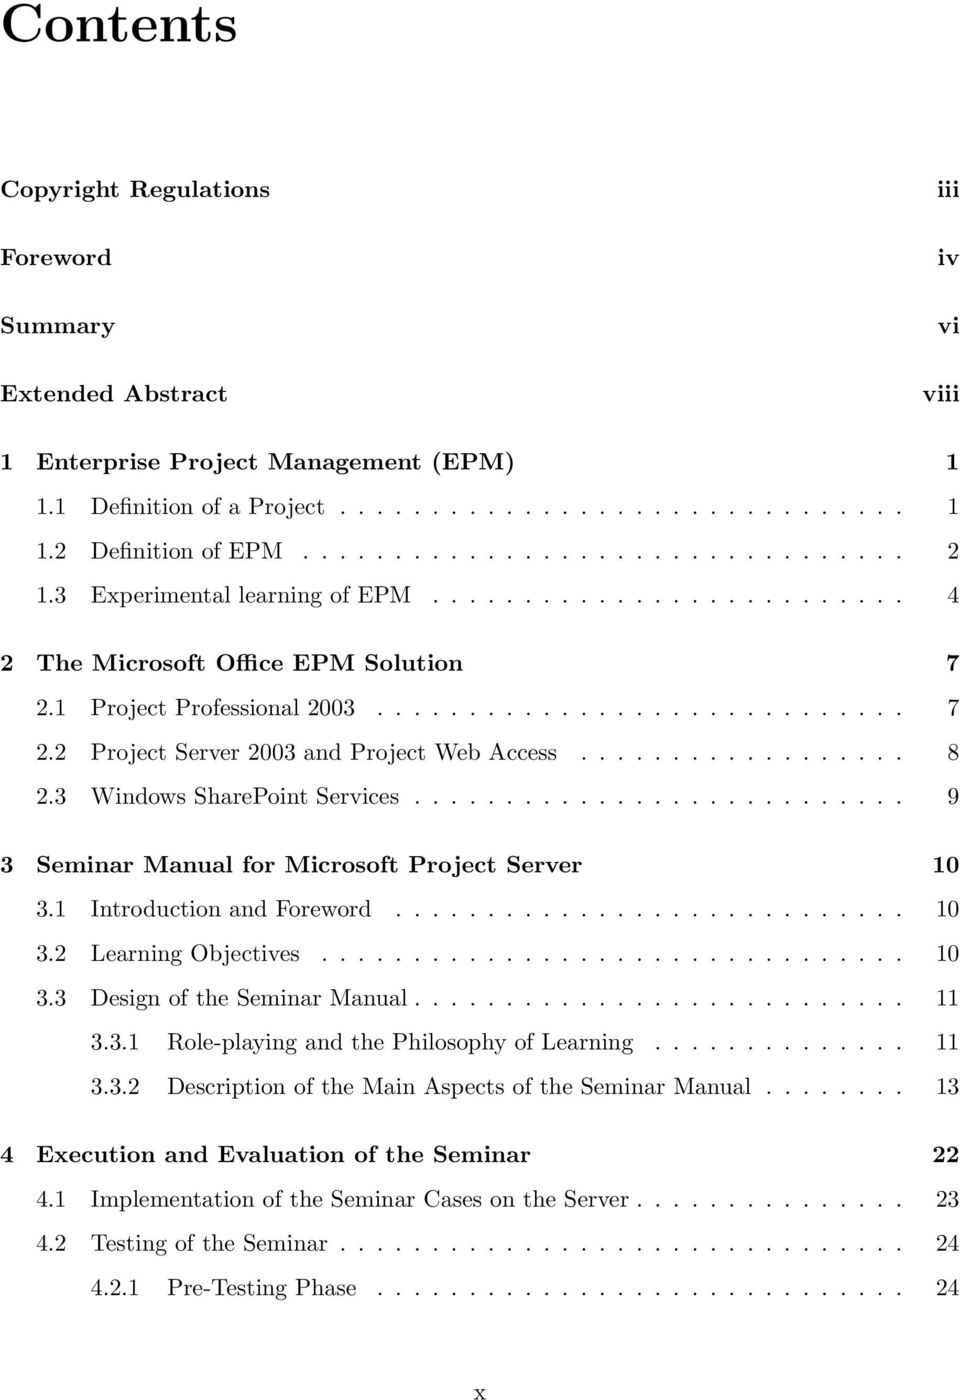 ................. 8 2.3 Windows SharePoint Services........................... 9 3 Seminar Manual for Microsoft Project Server 10 3.1 Introduction and Foreword............................ 10 3.2 Learning Objectives.